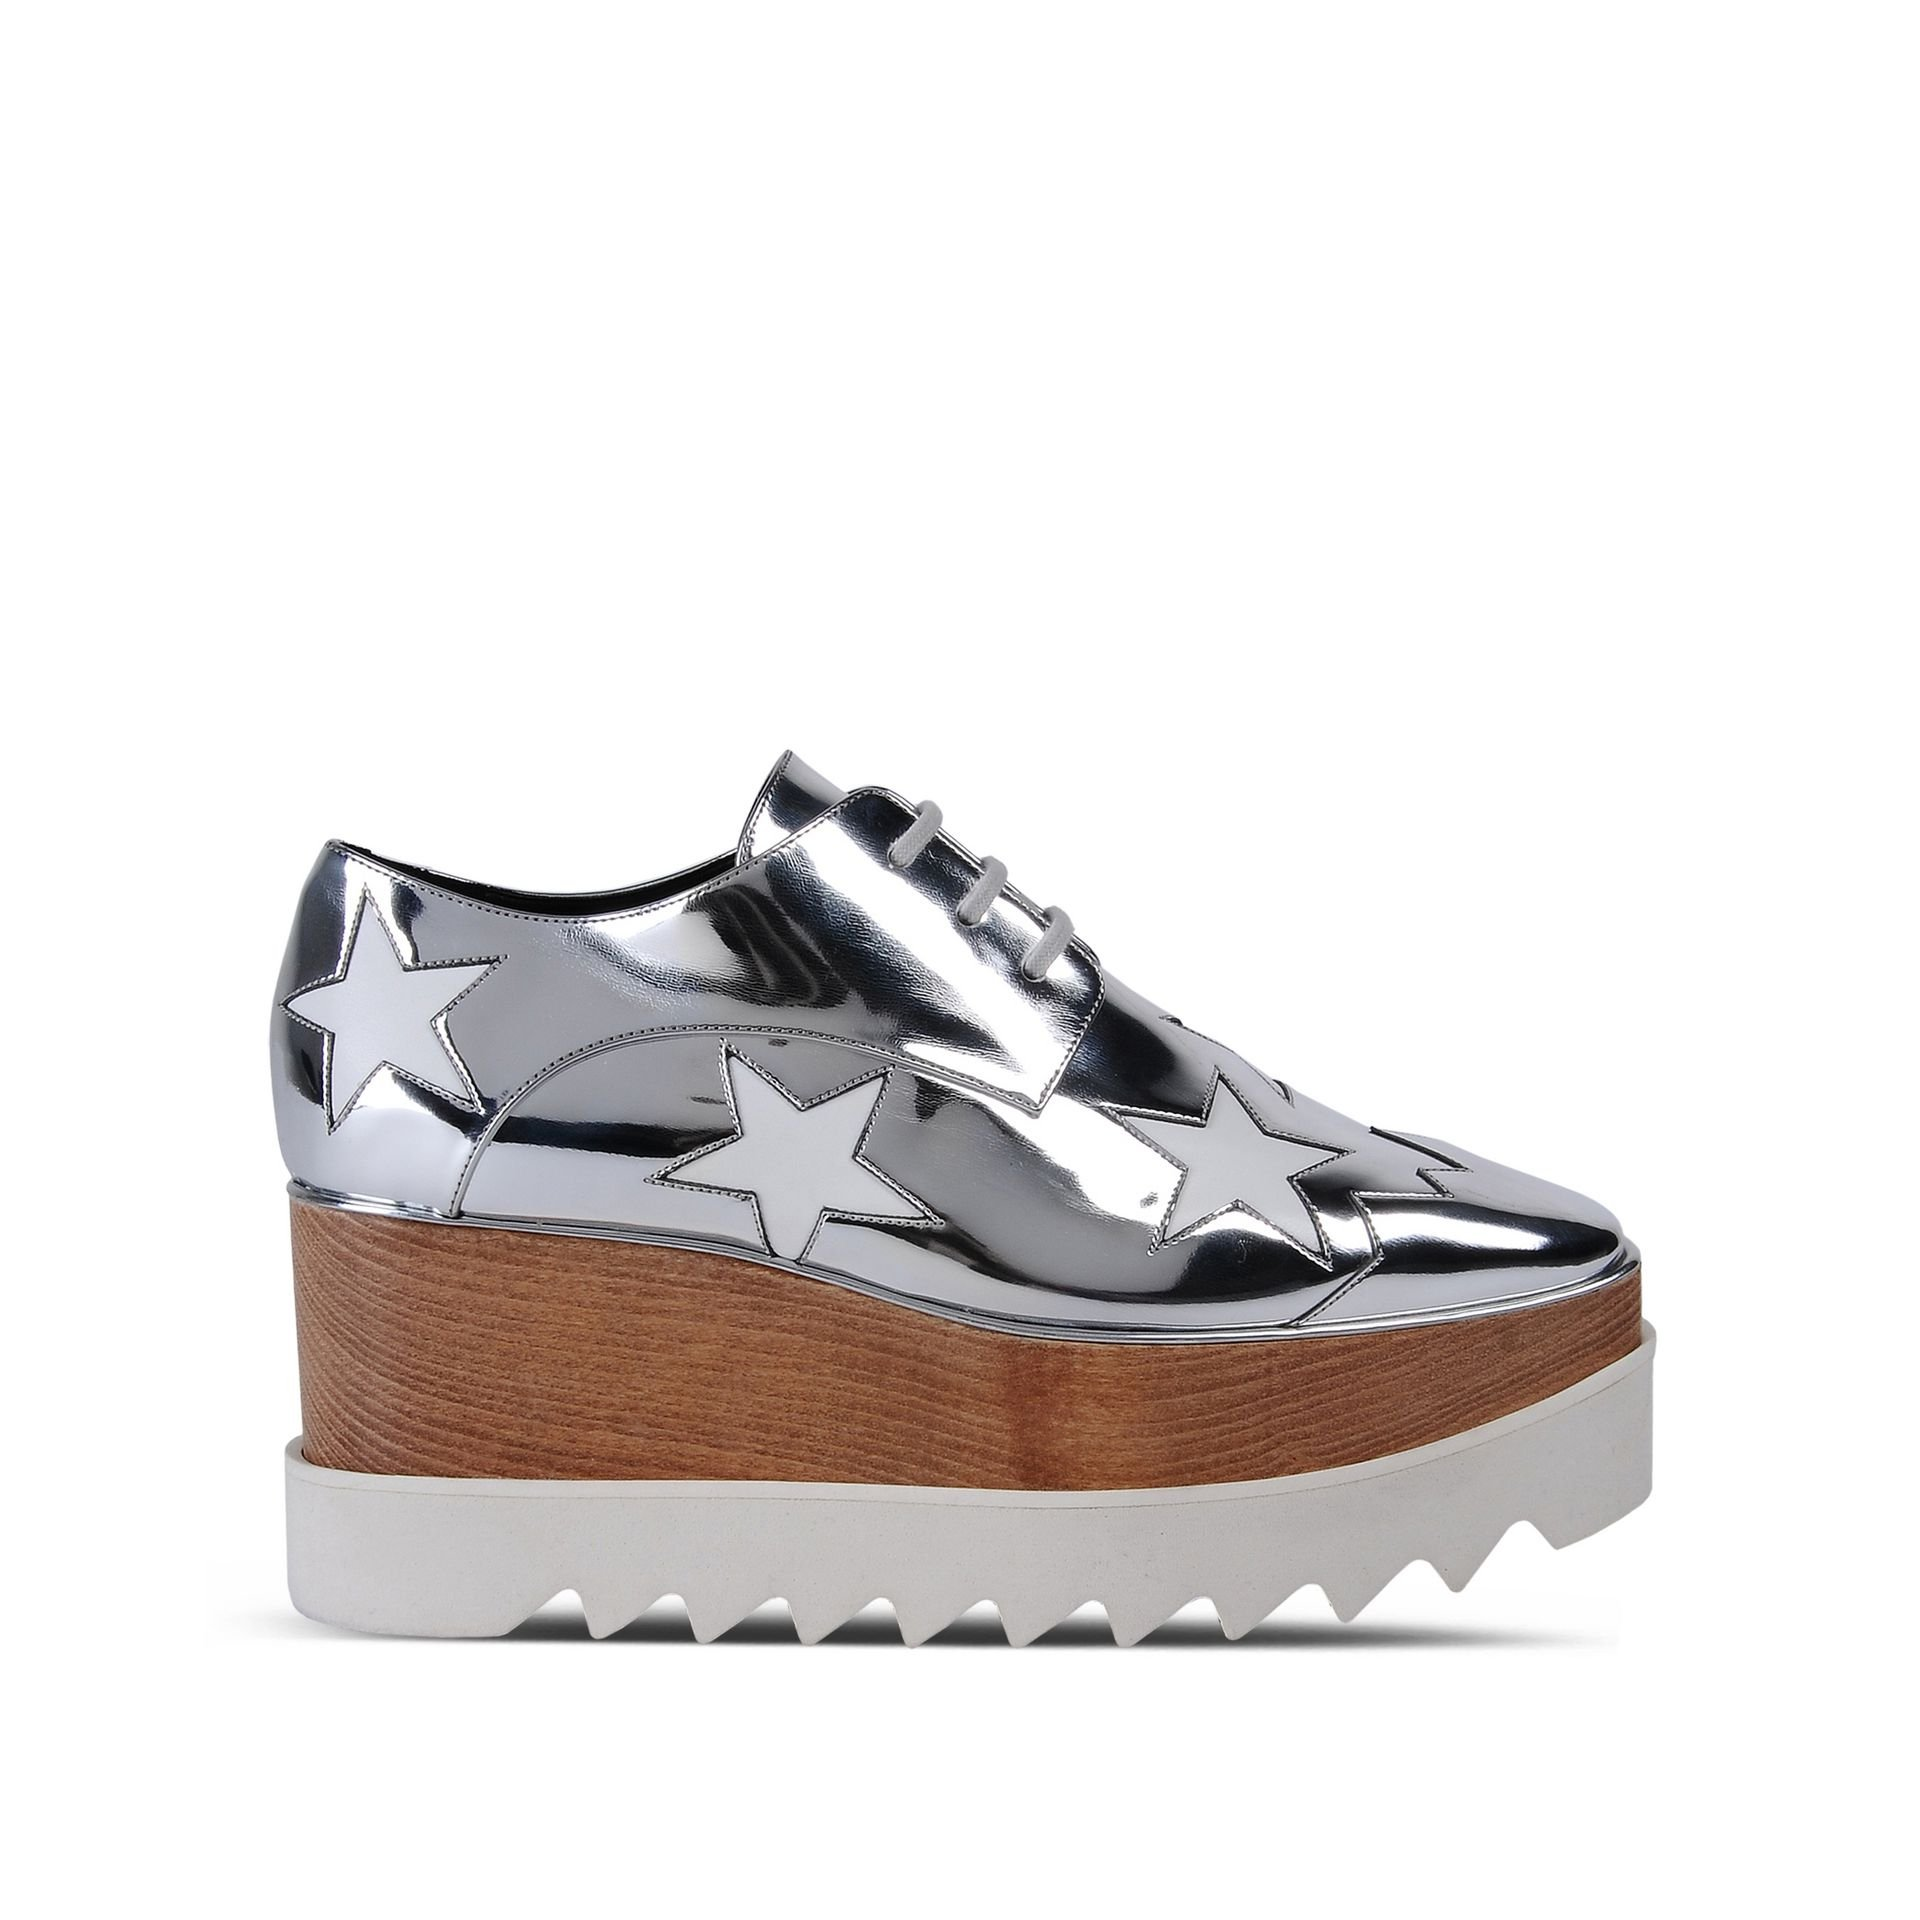 Buy Stella Mccartney Shoes